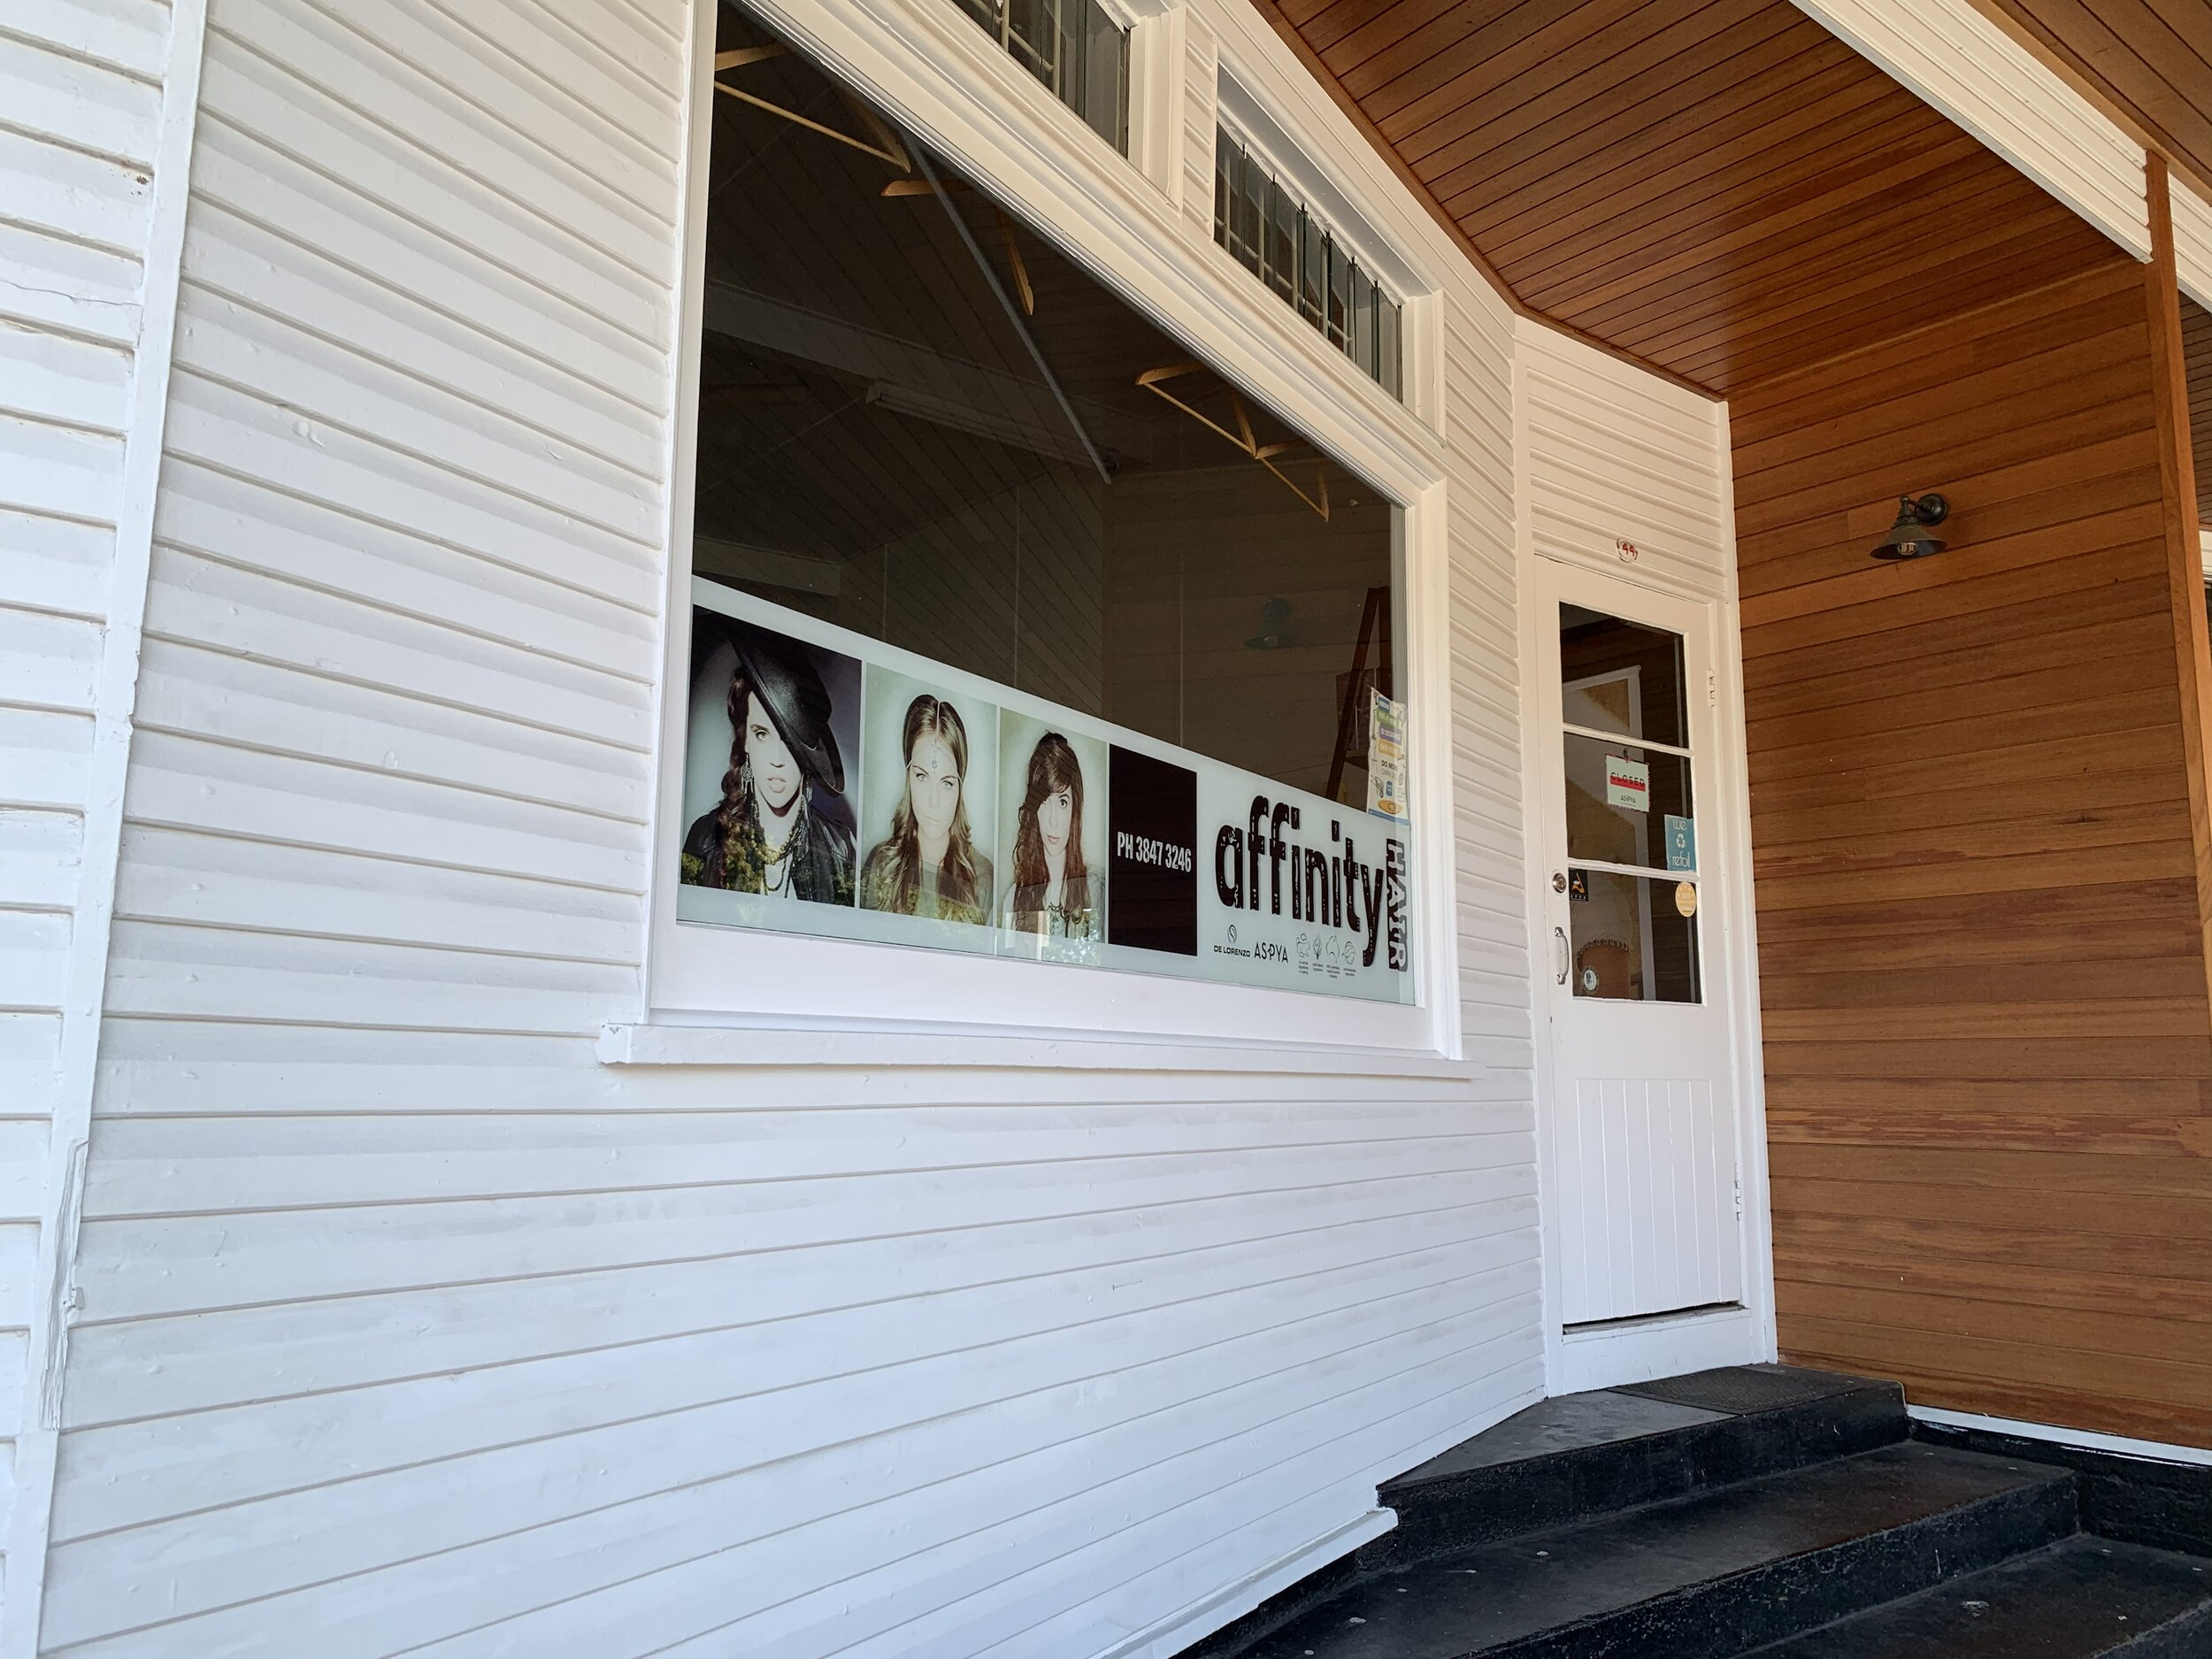 Our Salon - Affinity Hair has been established for more than 10 years in the leafy, inner Brisbane suburb of Tarragindi. We are proud of our long standing connection to our local community.